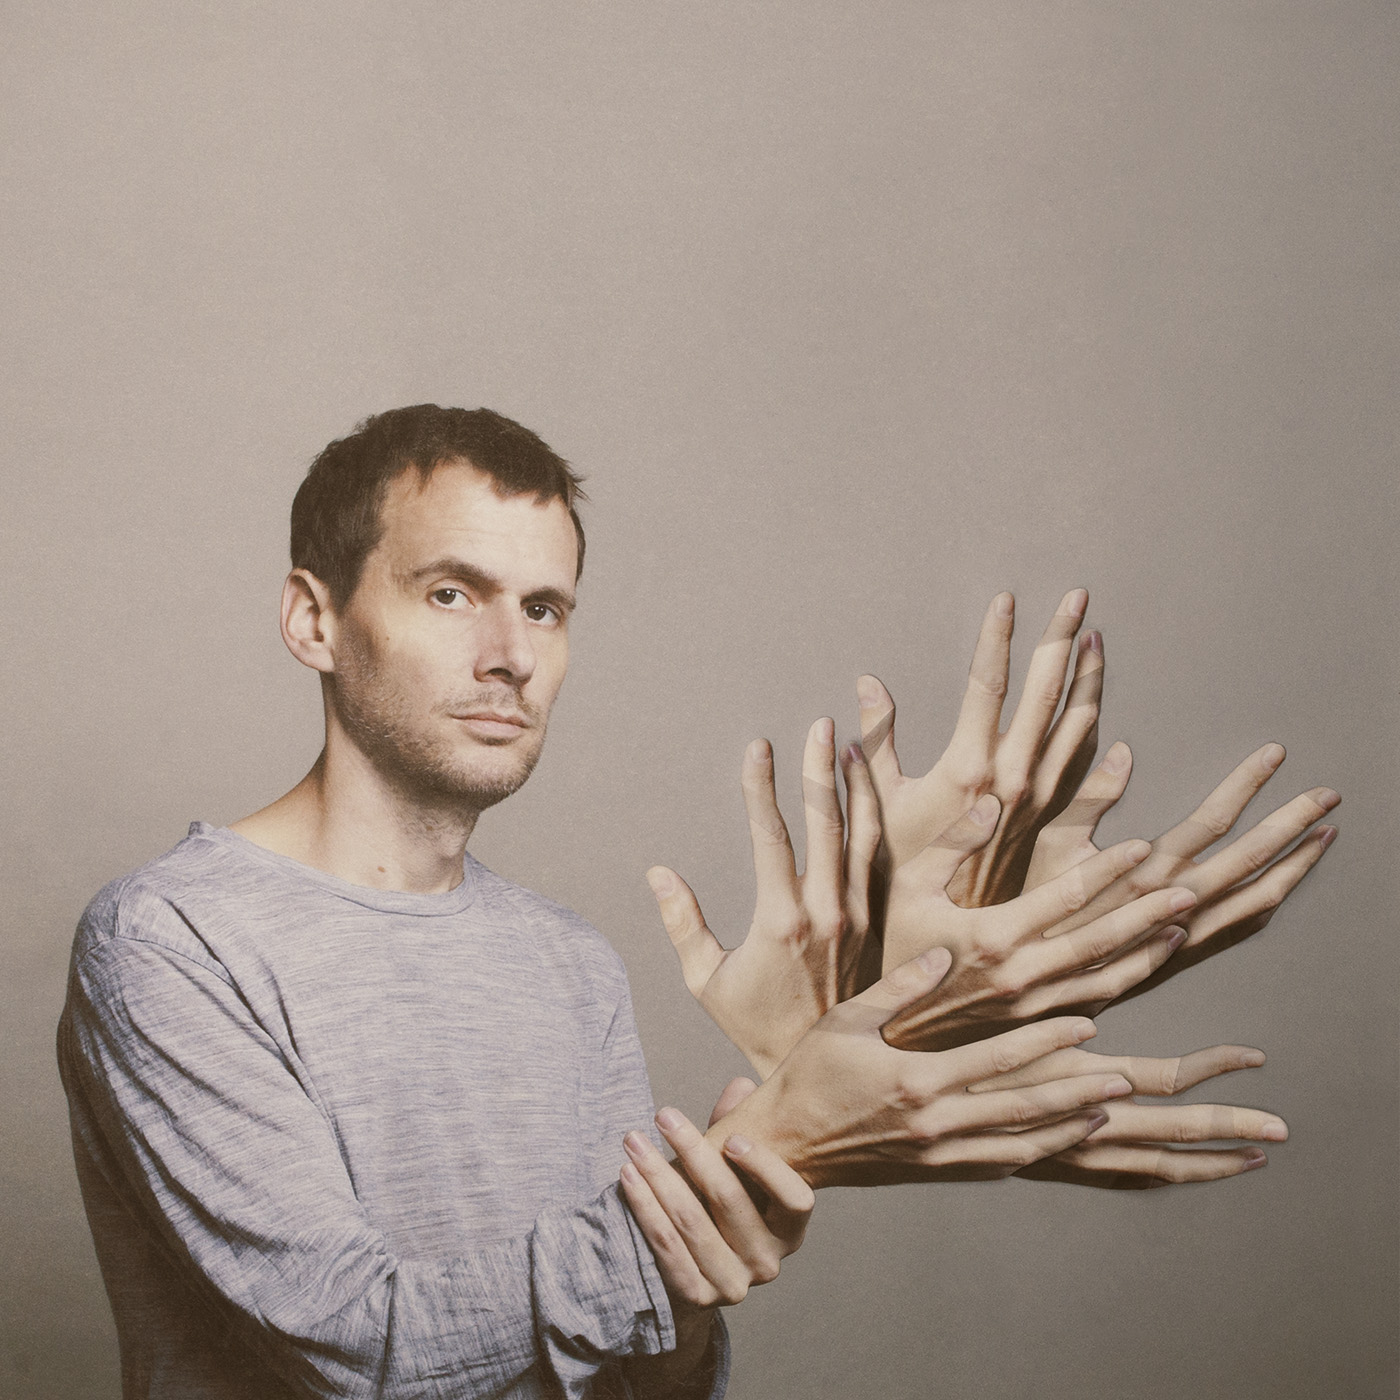 Cover art for Clark's 2013 album Feast Beast. Haser created the cover image by printing out multiple images of Clark's hands and laying them on top of one another